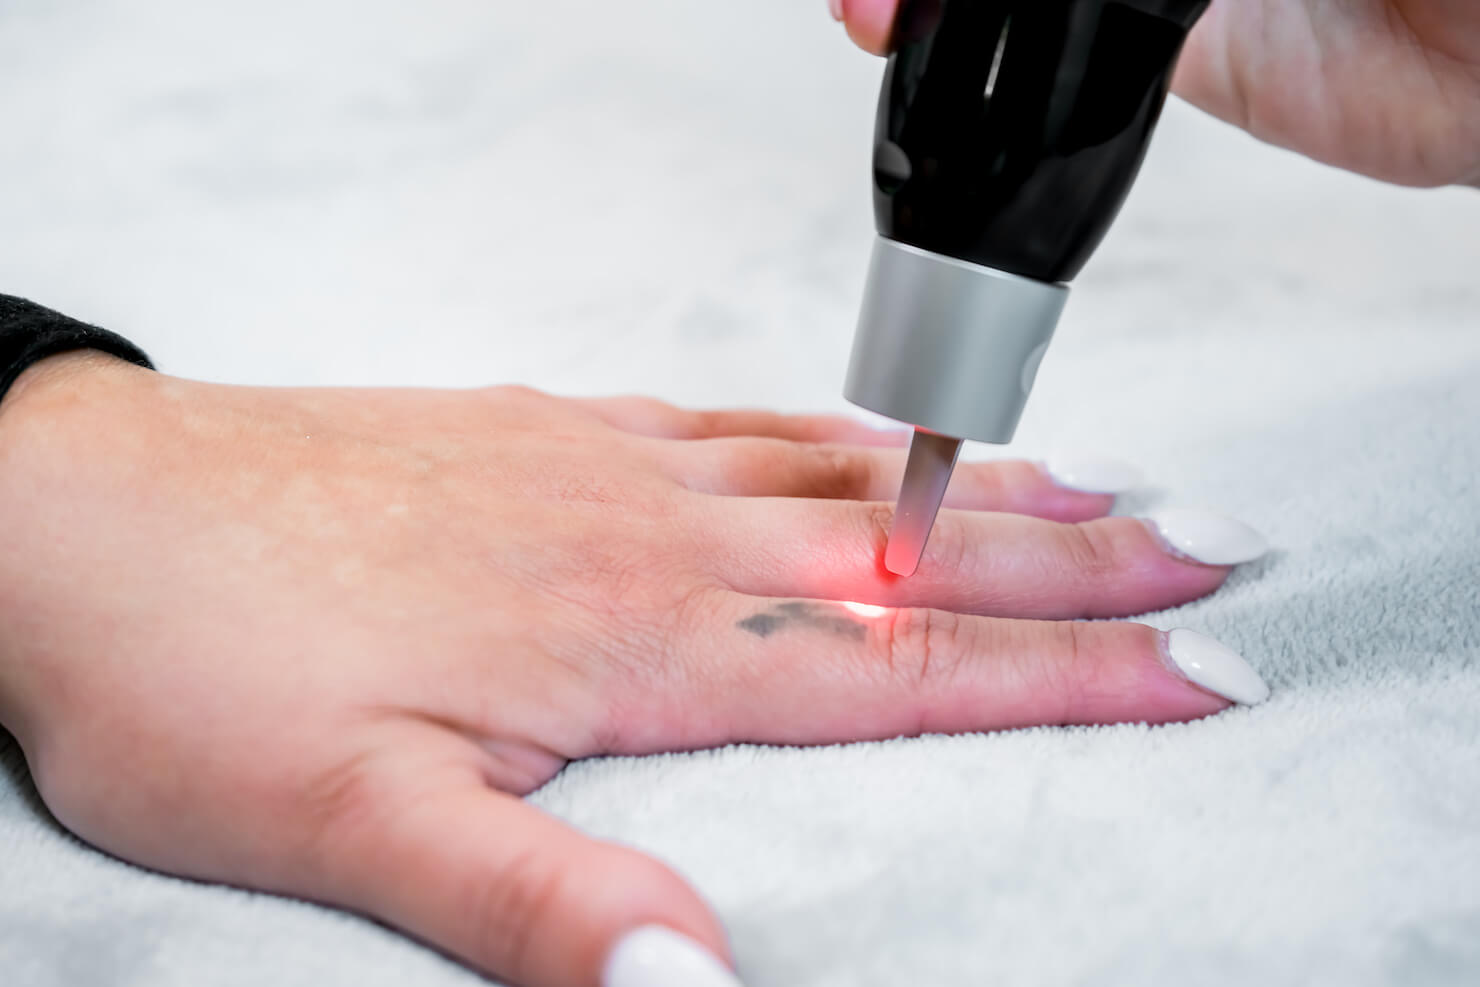 Surrey laser tattoo removal on finger with picosecond technology